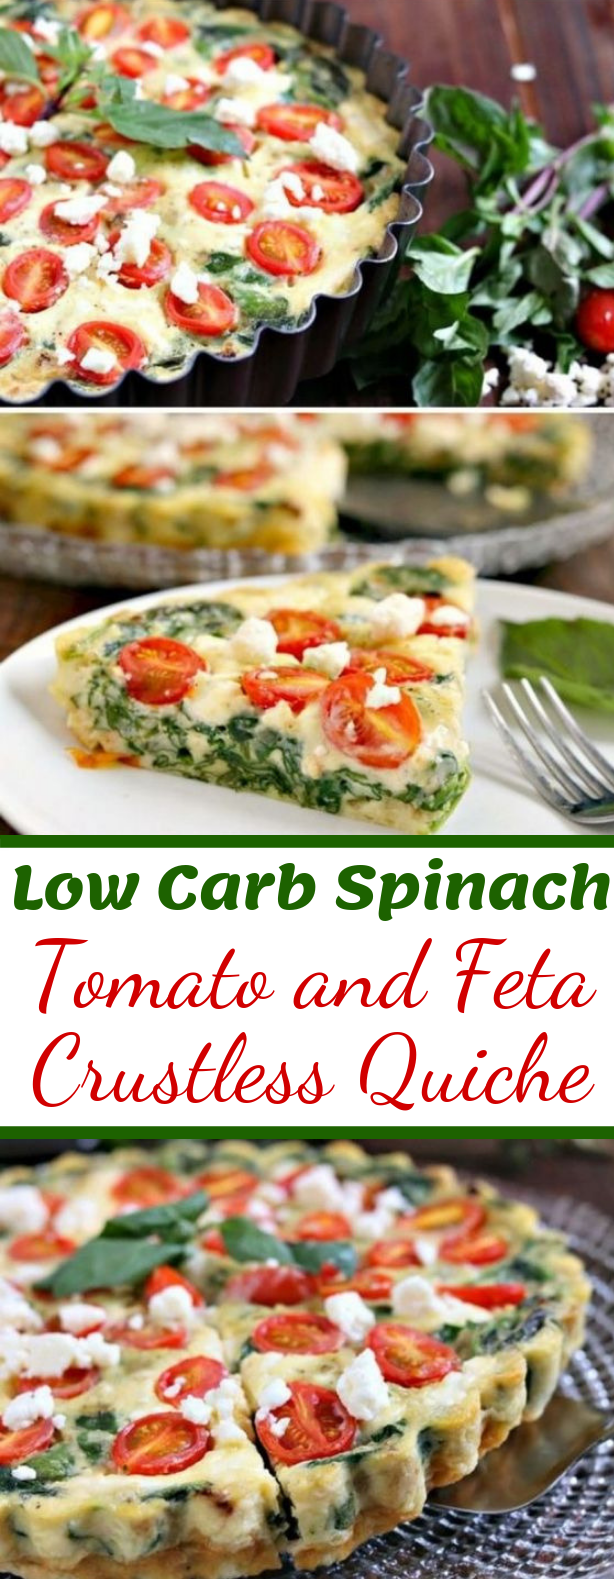 LOW CARB SPINACH, TOMATO AND FETA CRUSTLESS QUICHE